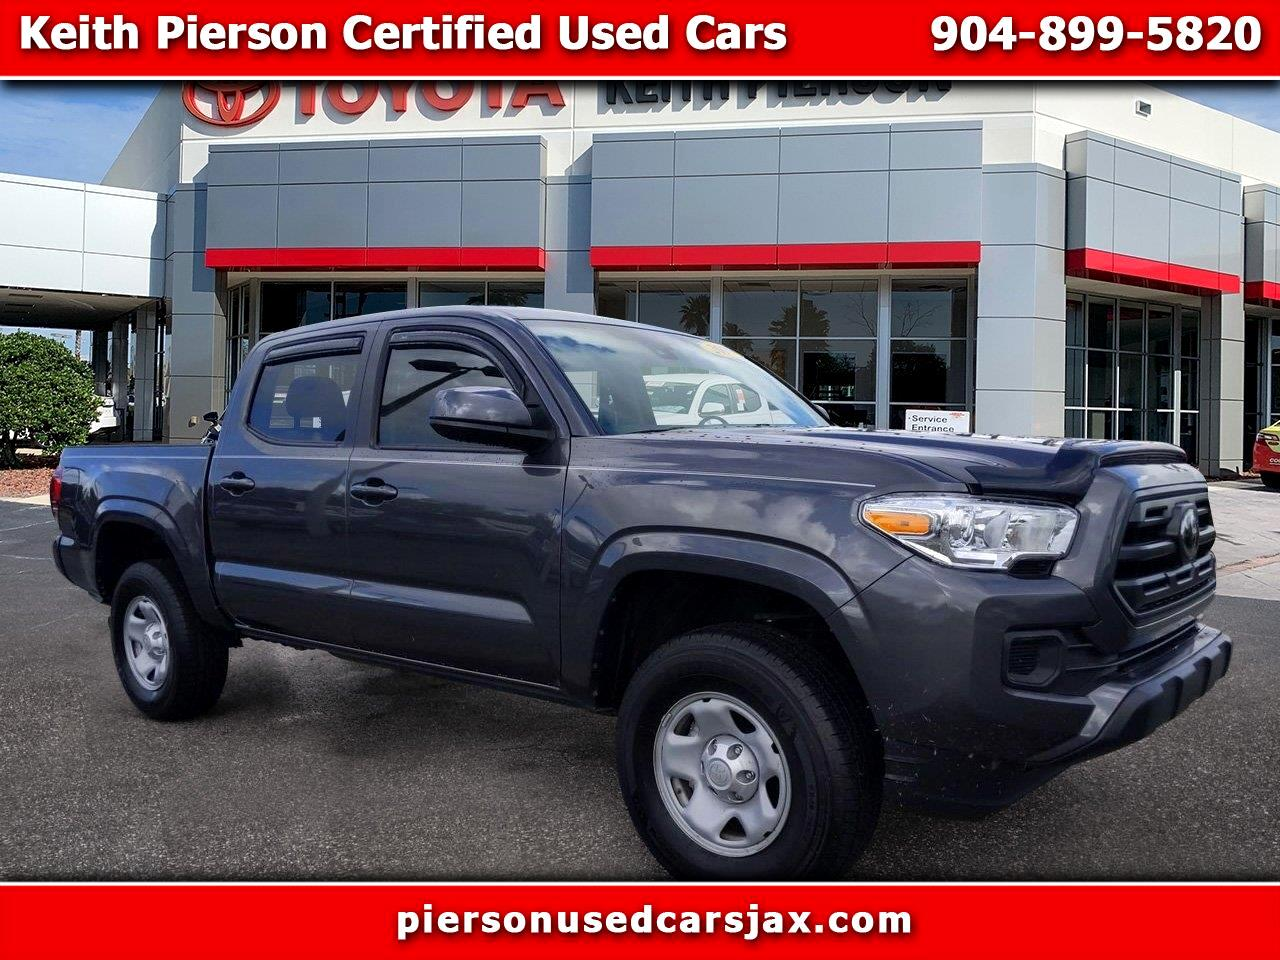 2019 Toyota Tacoma 2WD SR Double Cab 5' Bed I4 AT (Natl)